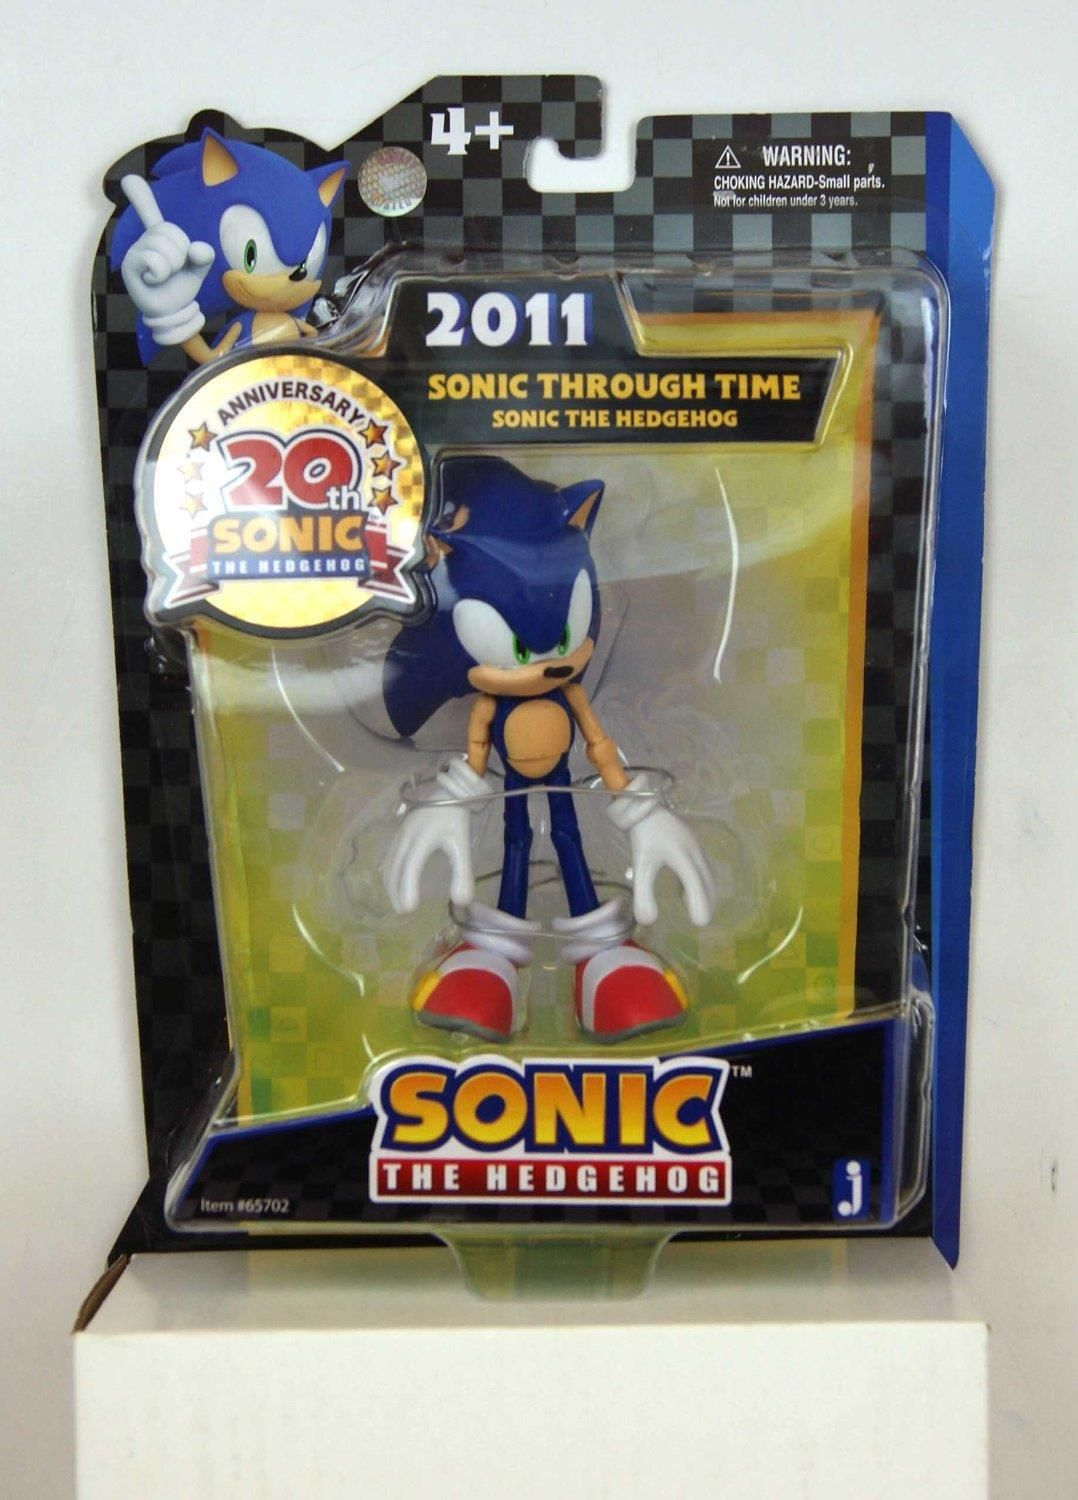 Sonic The Hedgehog 2011 Action Figure 13cm Manufacturer Jazwares Enarxis Code 012736 Toys Figures So Action Figures Sonic The Hedgehog Sonic Birthday